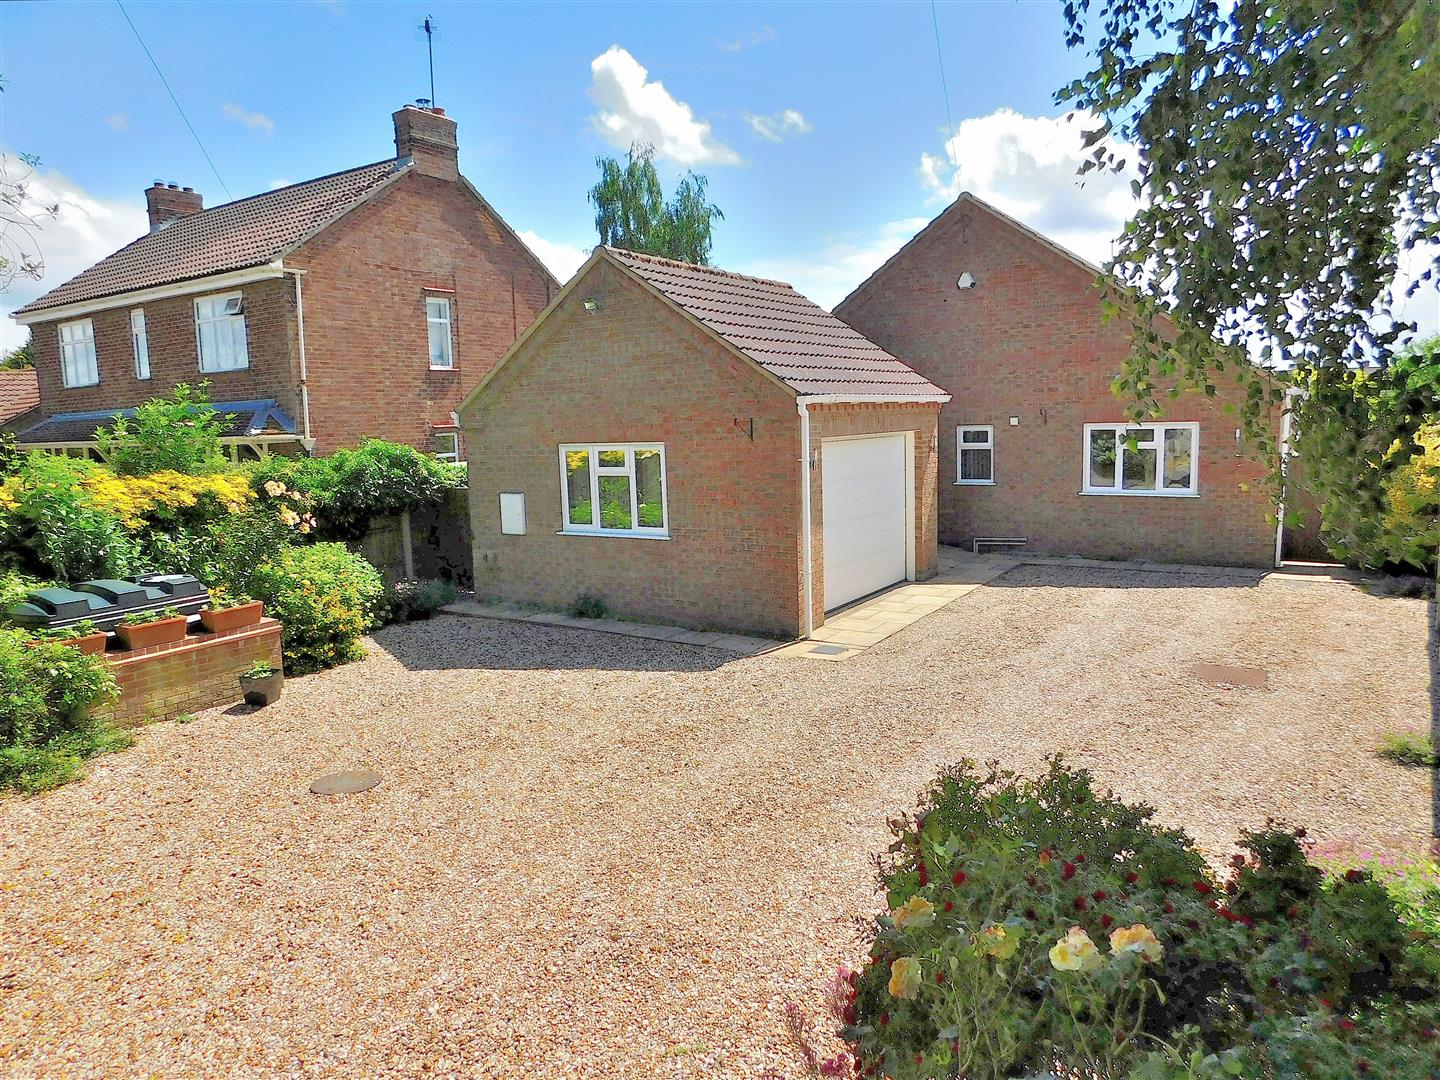 4 bed detached bungalow for sale in Popes Lane, King's Lynn, PE34